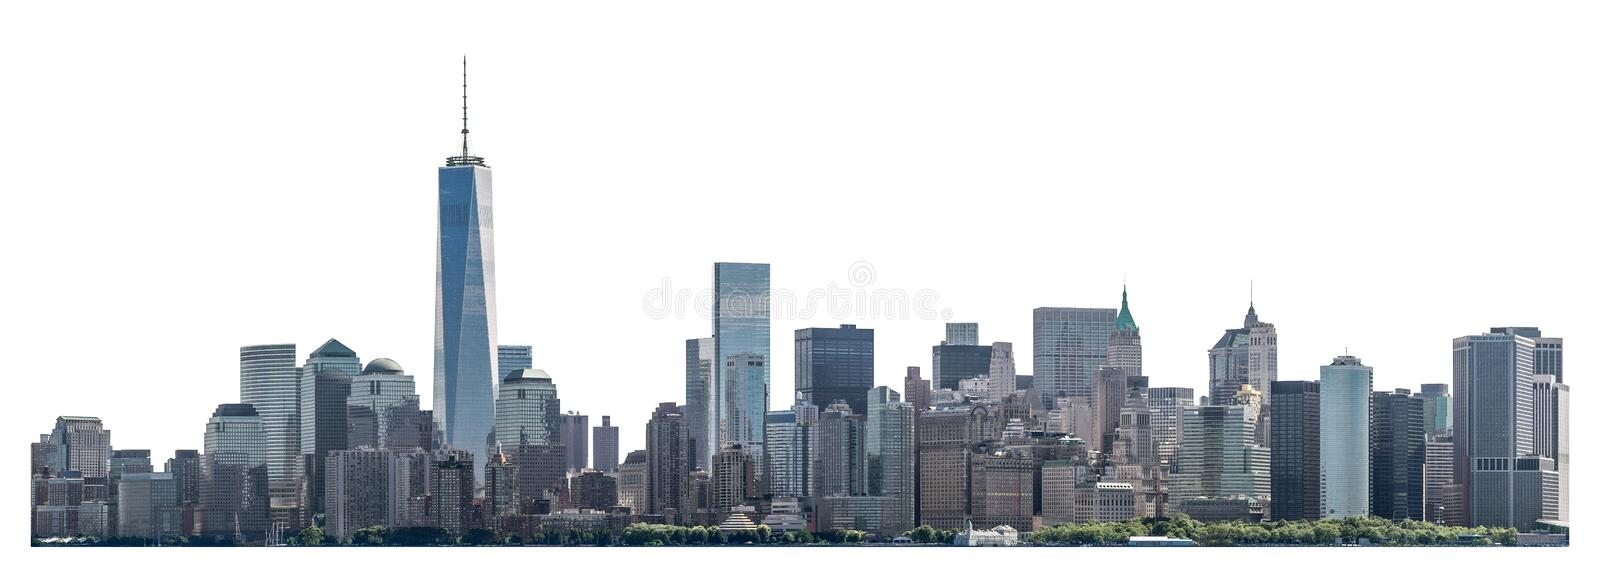 World Trade Center and skyscraper in Lower Manhattan, New York City, isolated. One World Trade Center and skyscraper, high-rise building in Lower Manhattan, New stock photos